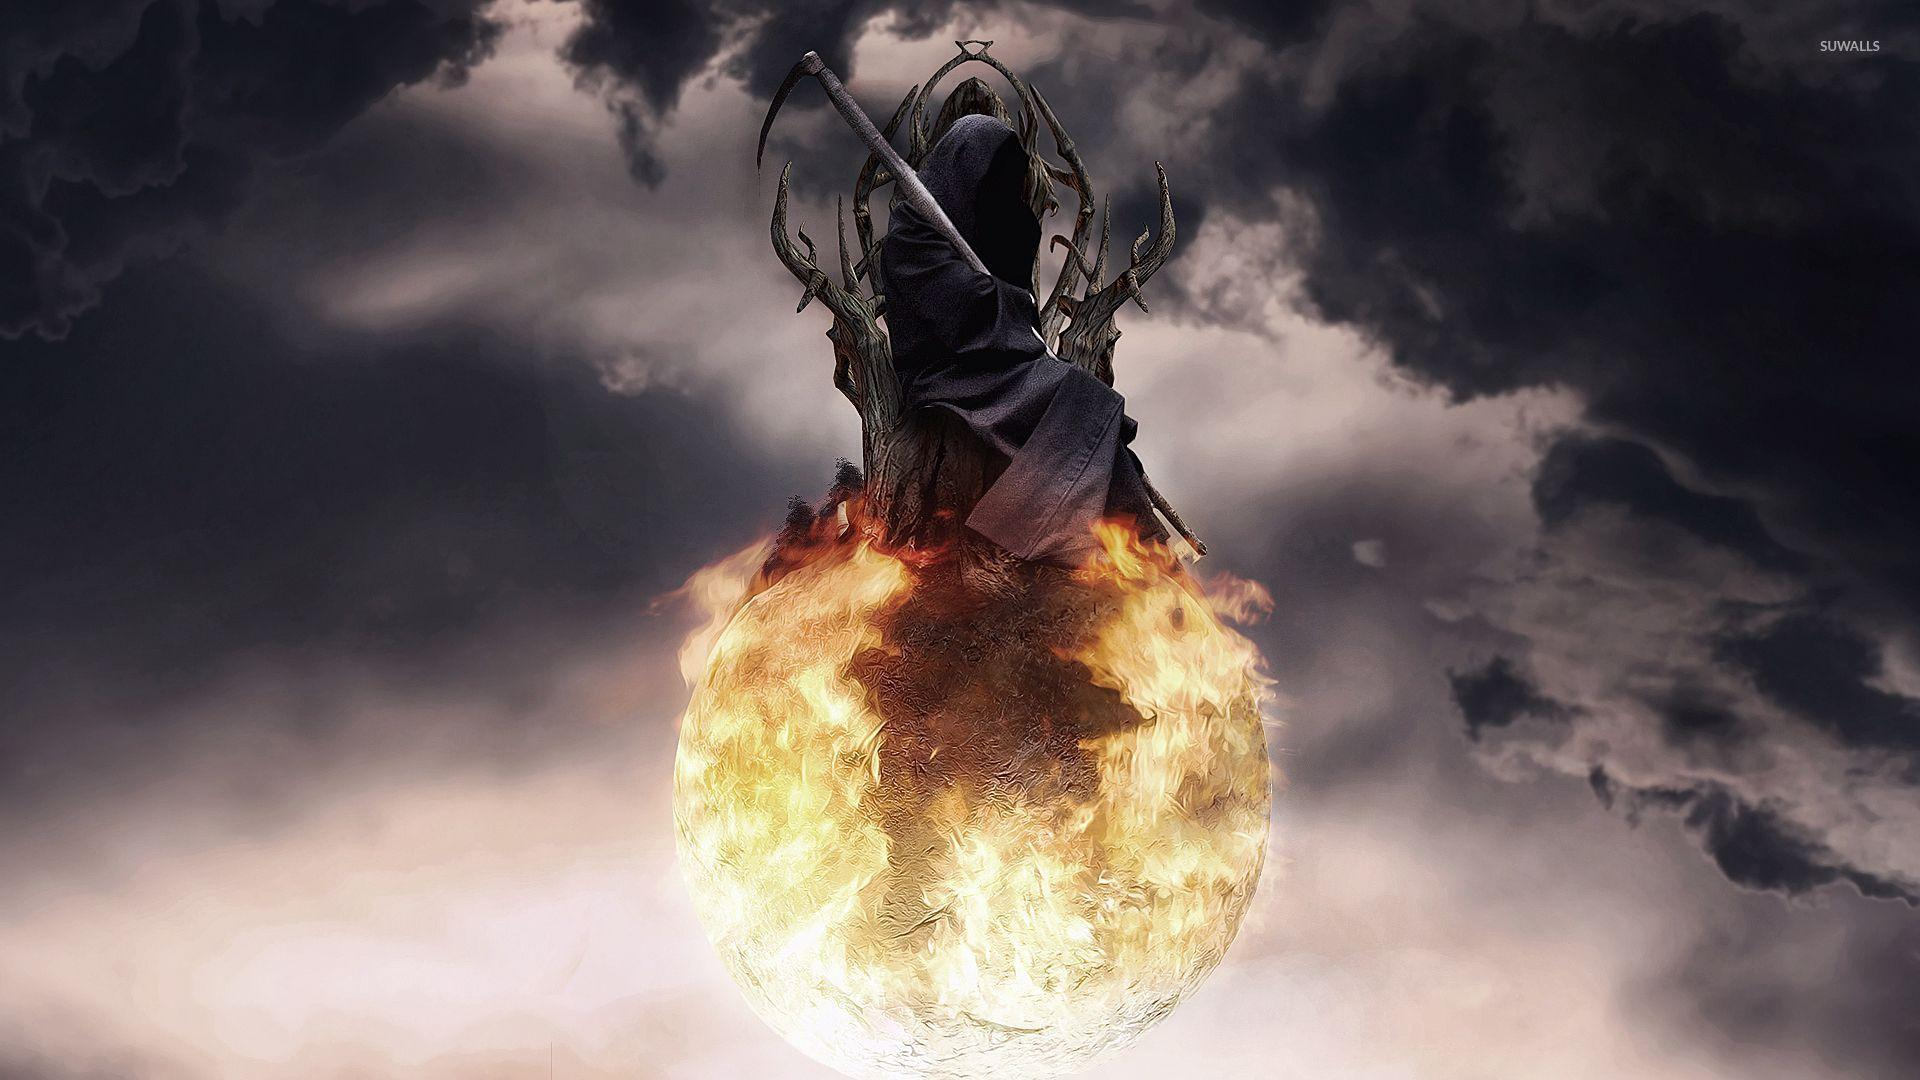 Death on a fire ball wallpaper - Fantasy wallpapers - #53106